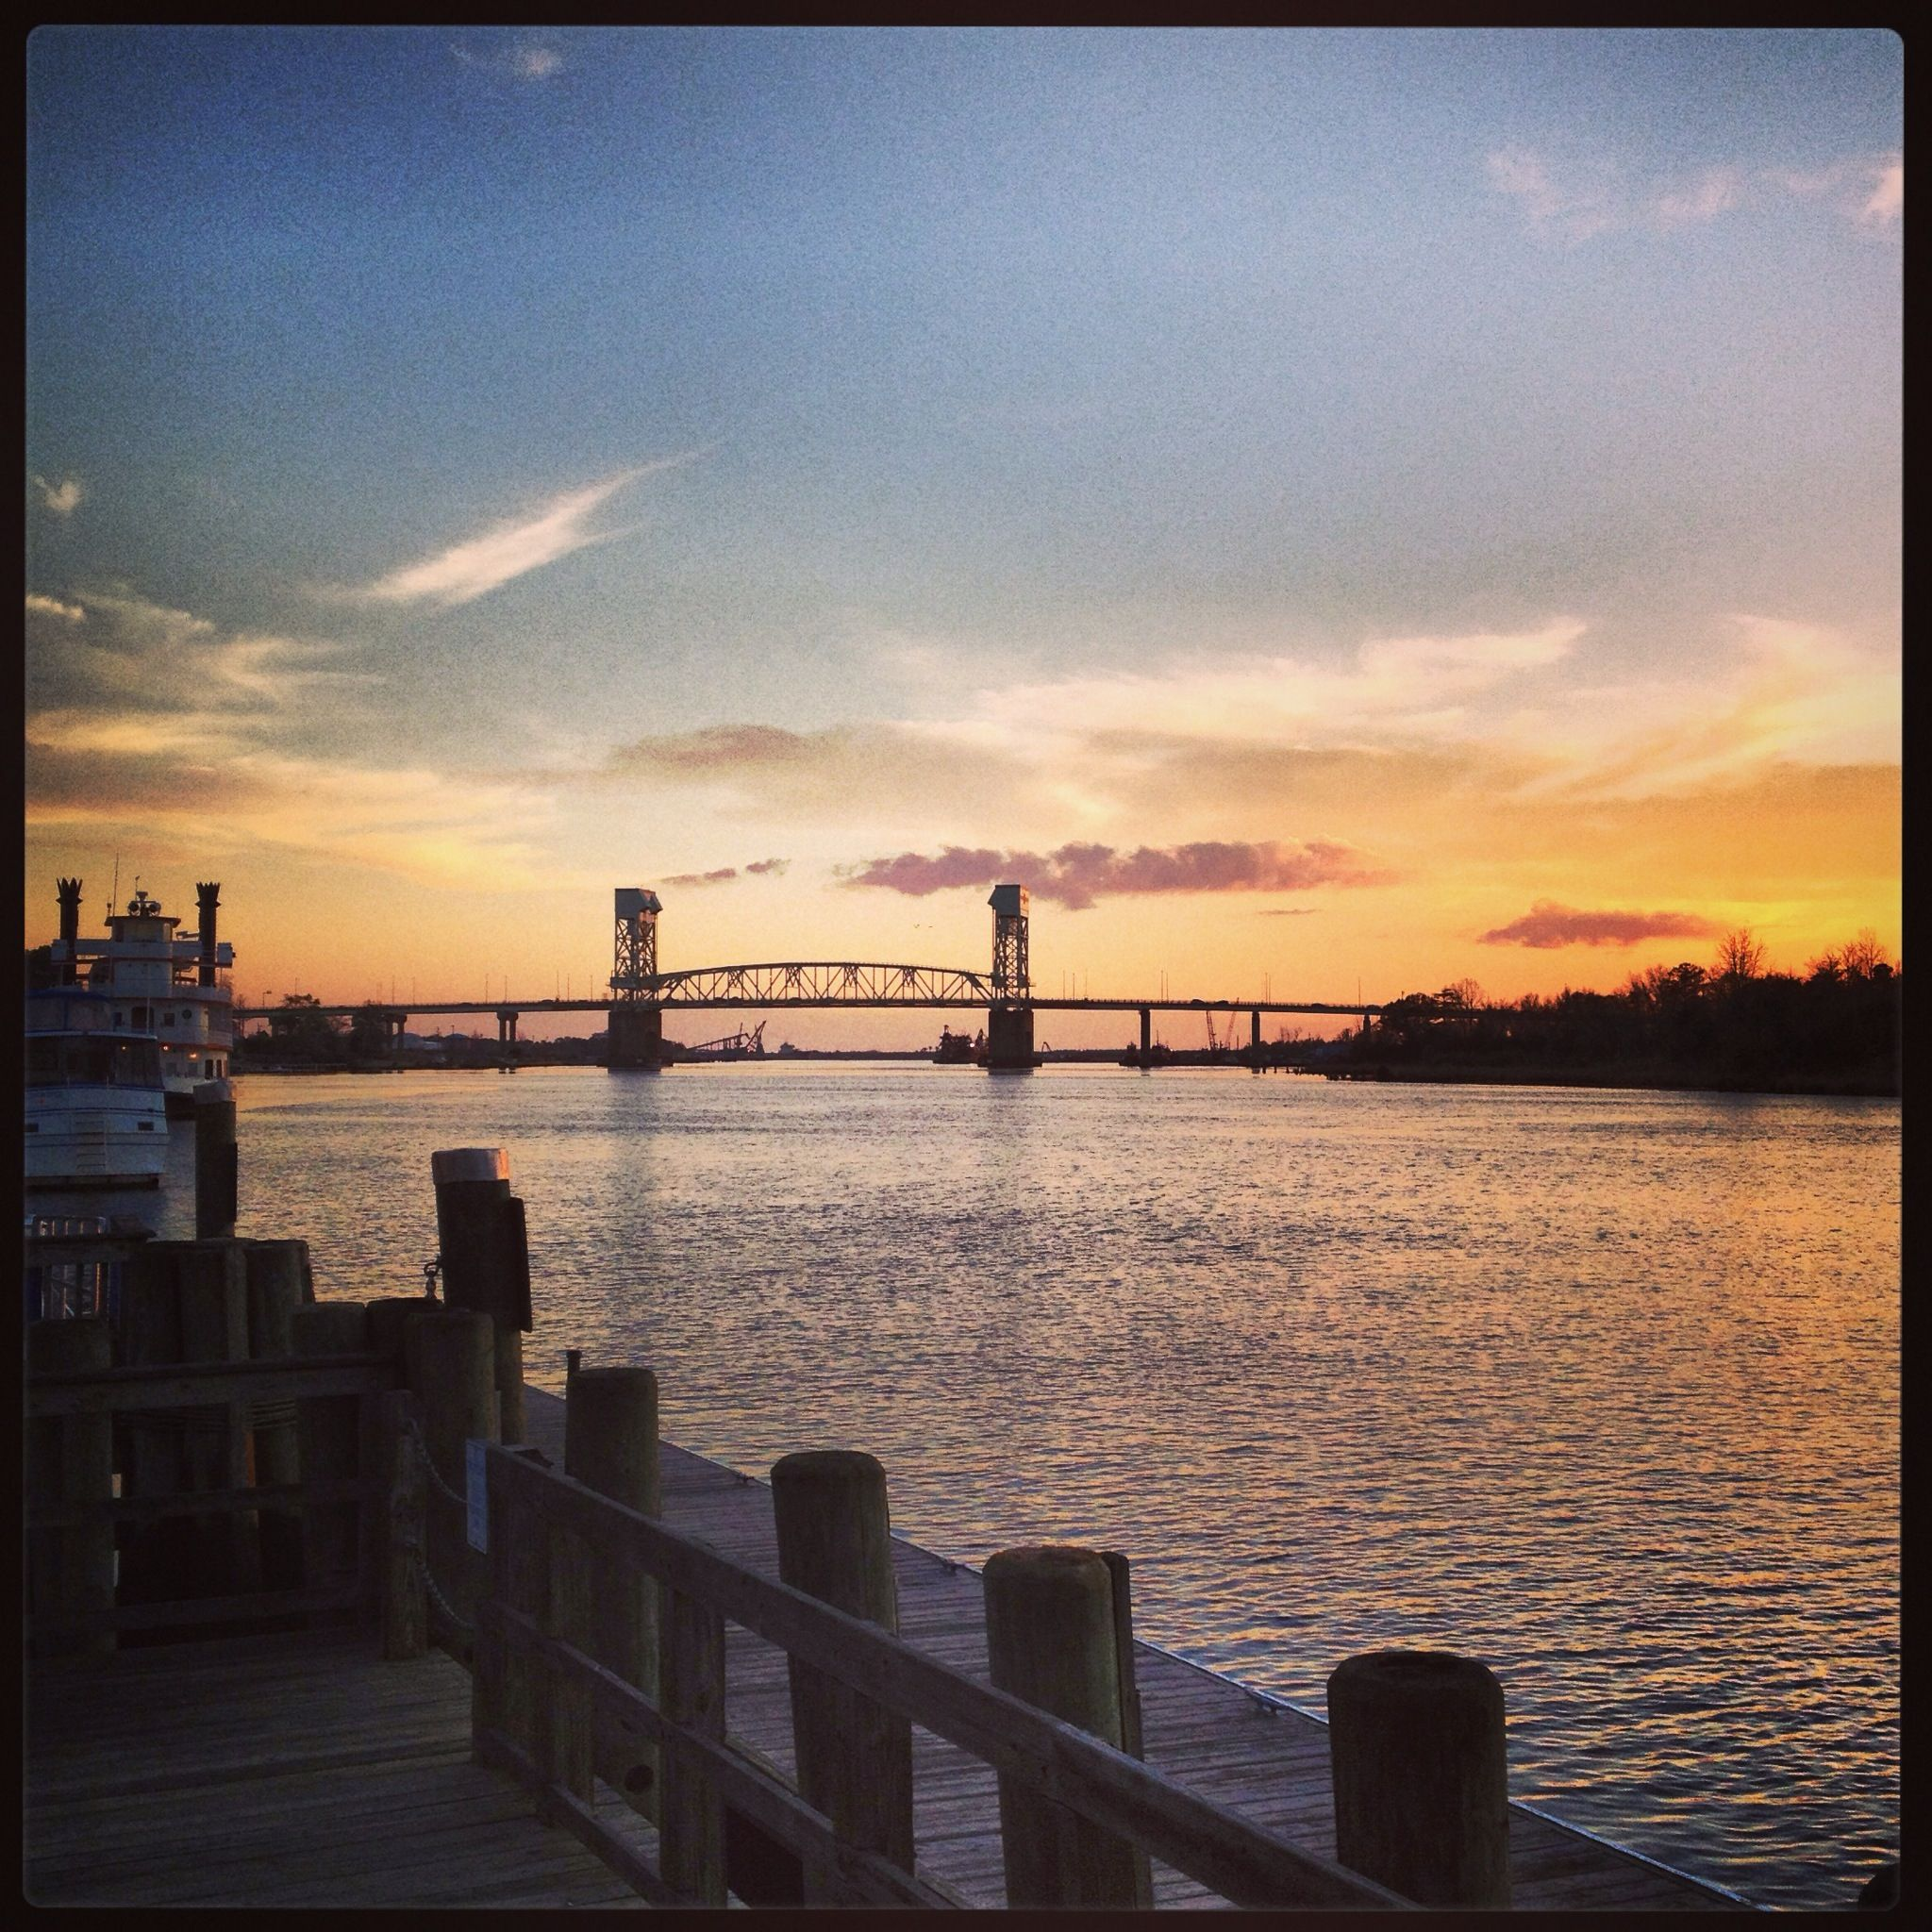 View of the Cape Fear Memorial Bridge from the downtown Riverwalk, Wilmington, NC. www.SeaCoastRealty.com #wilmingtonnc #sunset #river #capefear #bridge